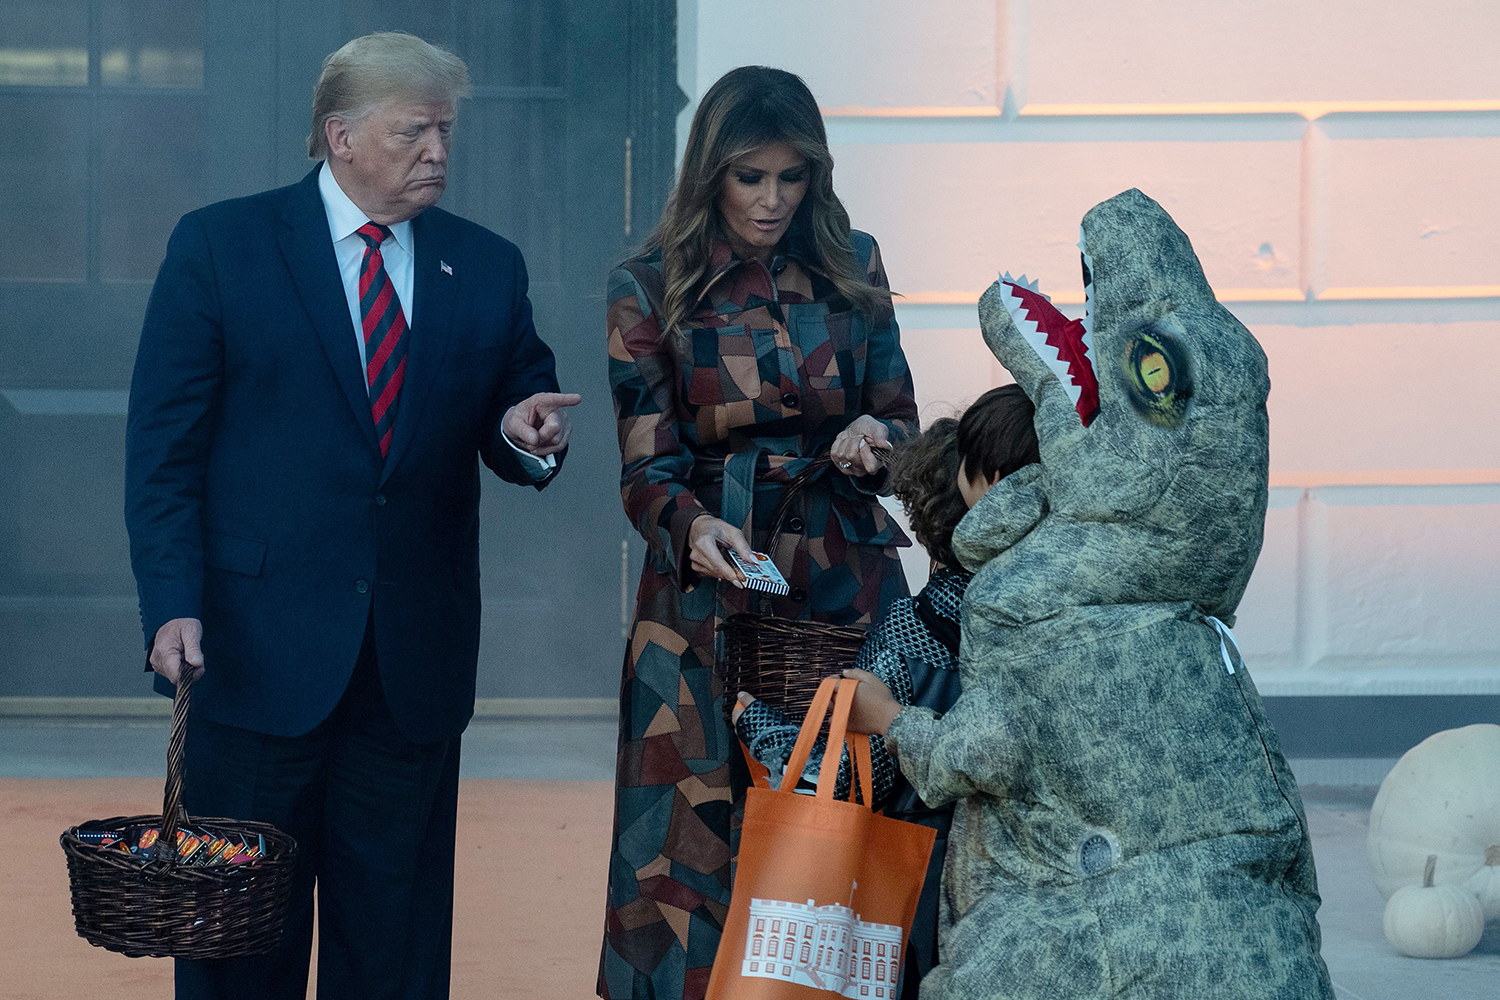 U.S. President Donald Trump and First Lady Melania Trump arrive to hand out candy for children at a Halloween celebration at the White House in Washington on Oct. 28. NICHOLAS KAMM/AFP via Getty Images